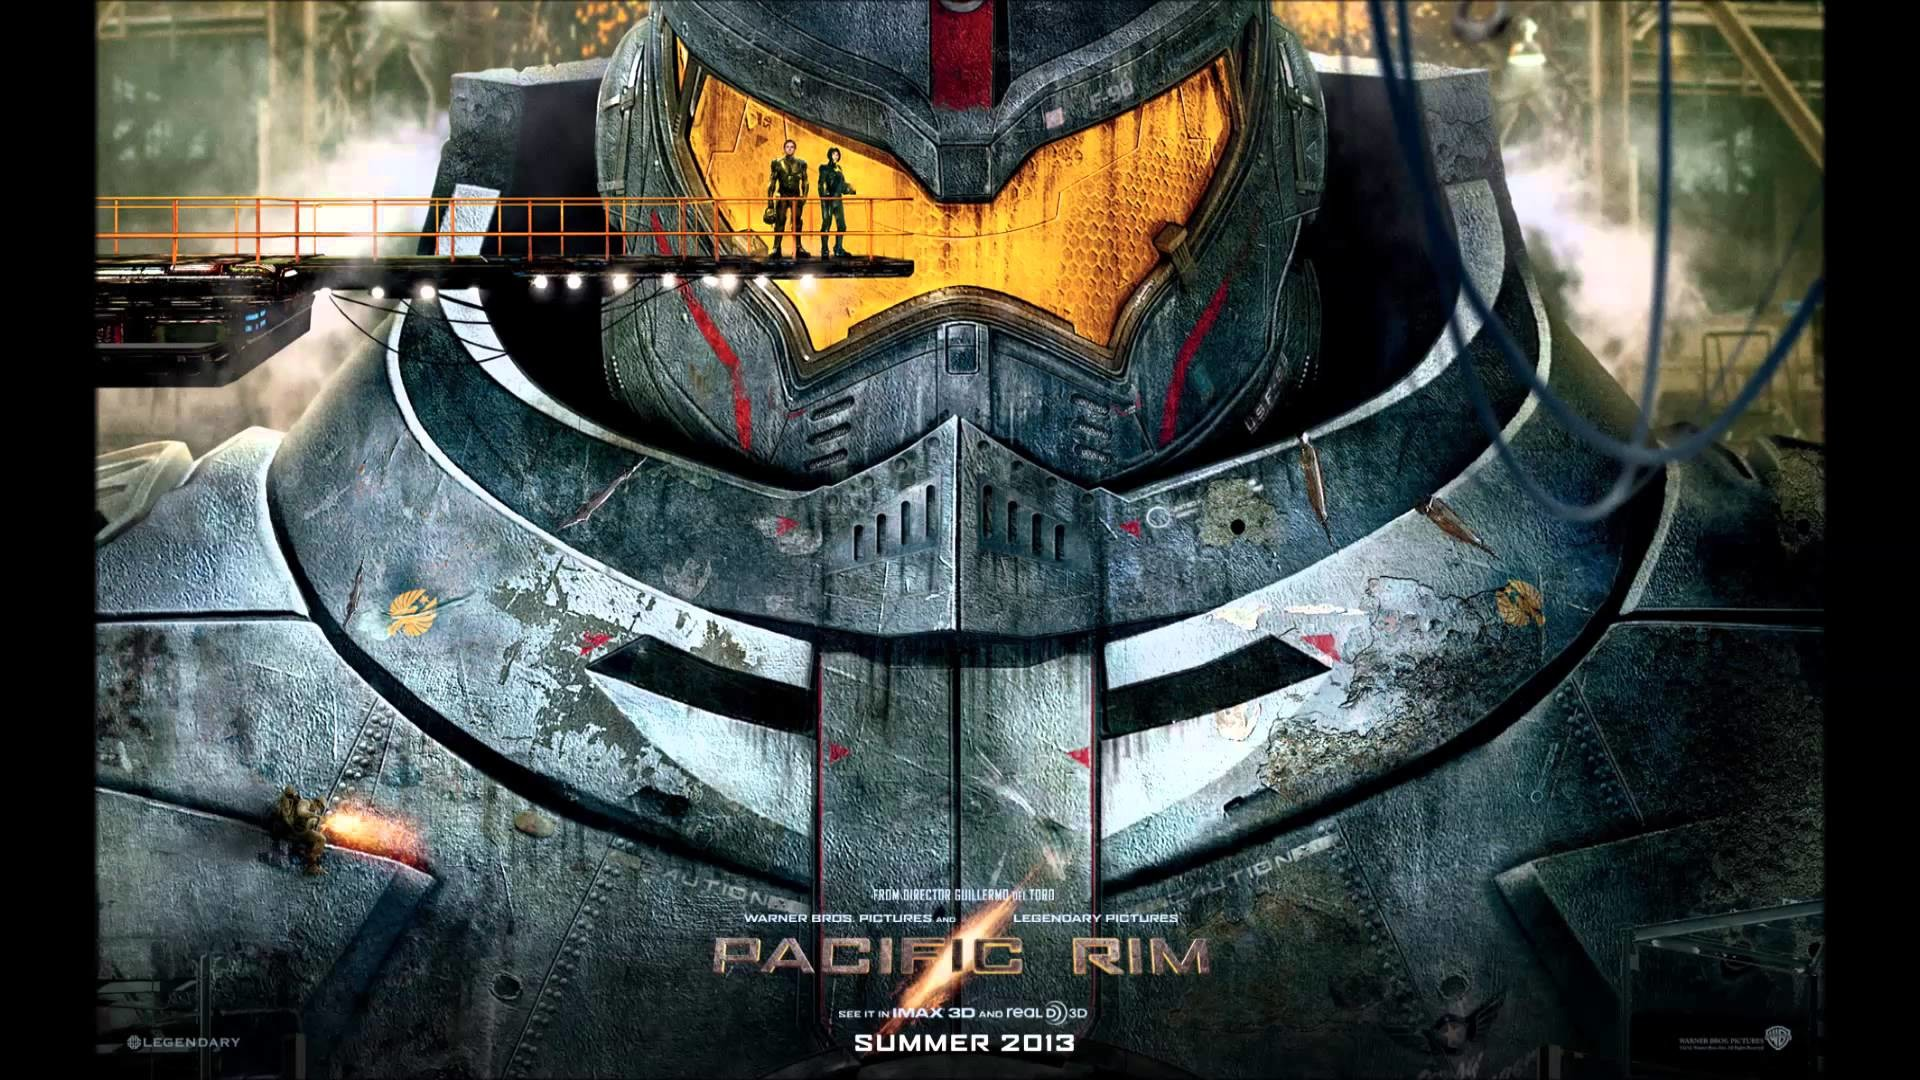 1920x1080 Best 20 Gipsy danger ideas on Pinterest | Pacific rim, Pacific .